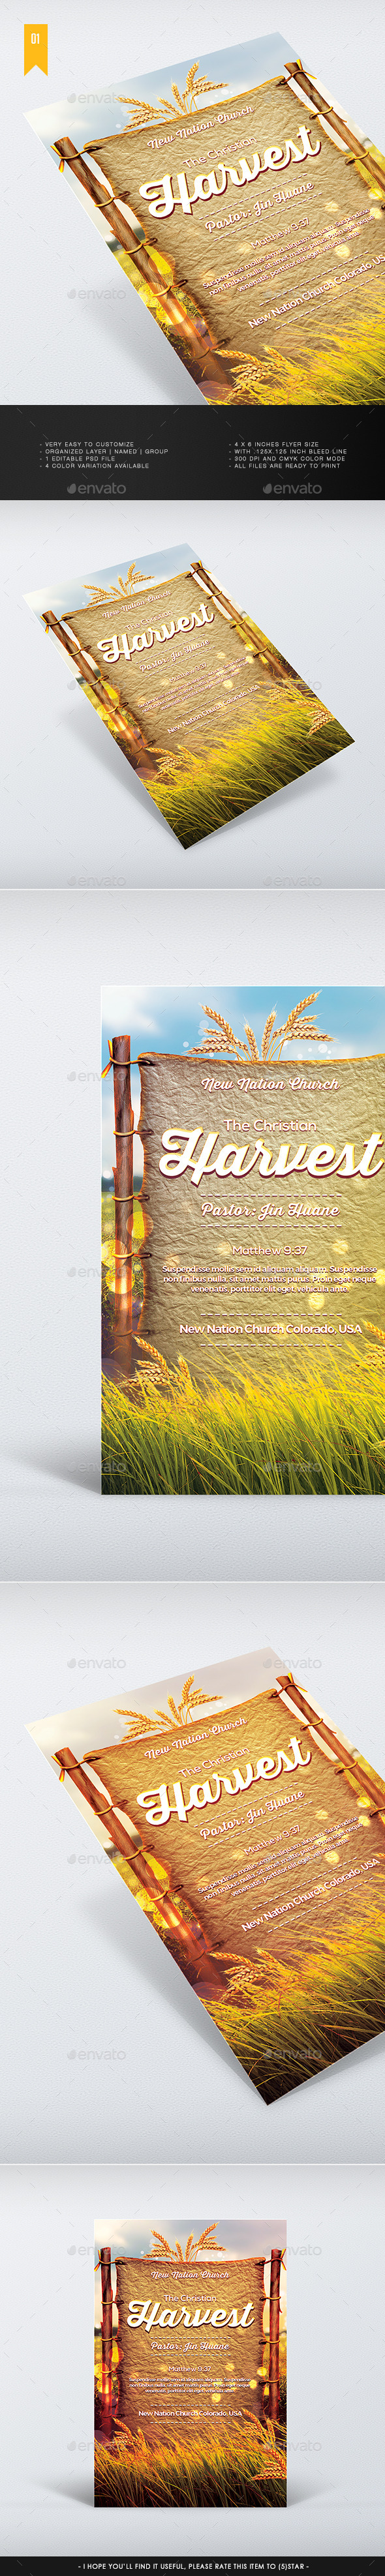 Harvest - Church Flyer - Church Flyers